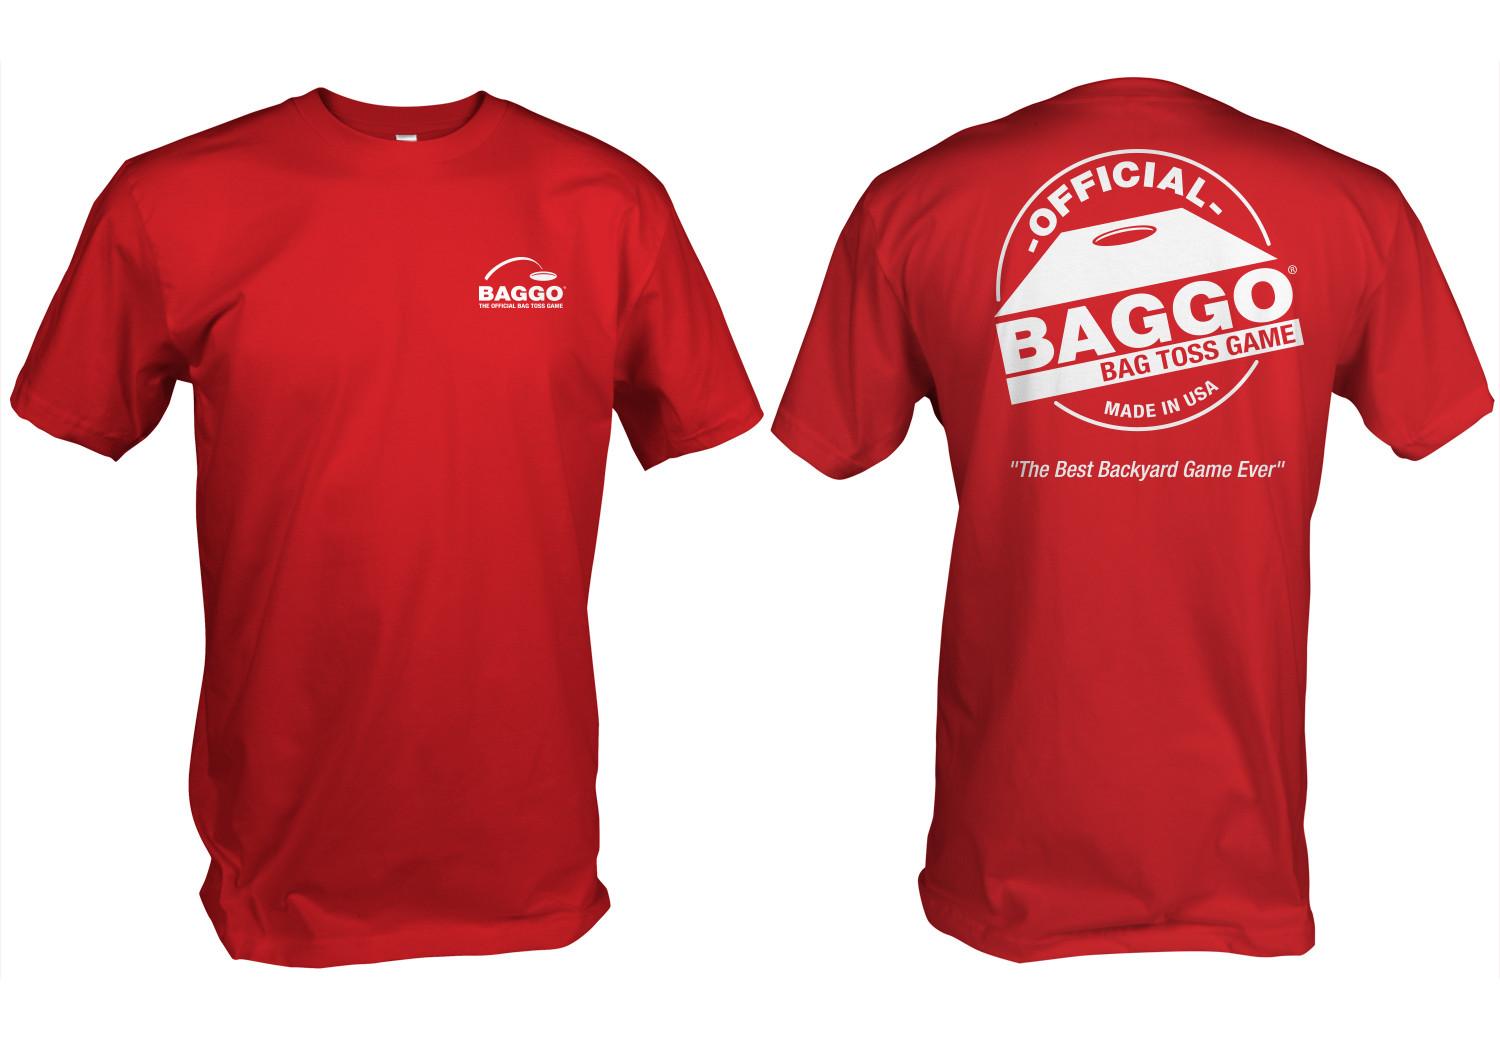 Classic Official BAGGO Bag Toss Game T-Shirt